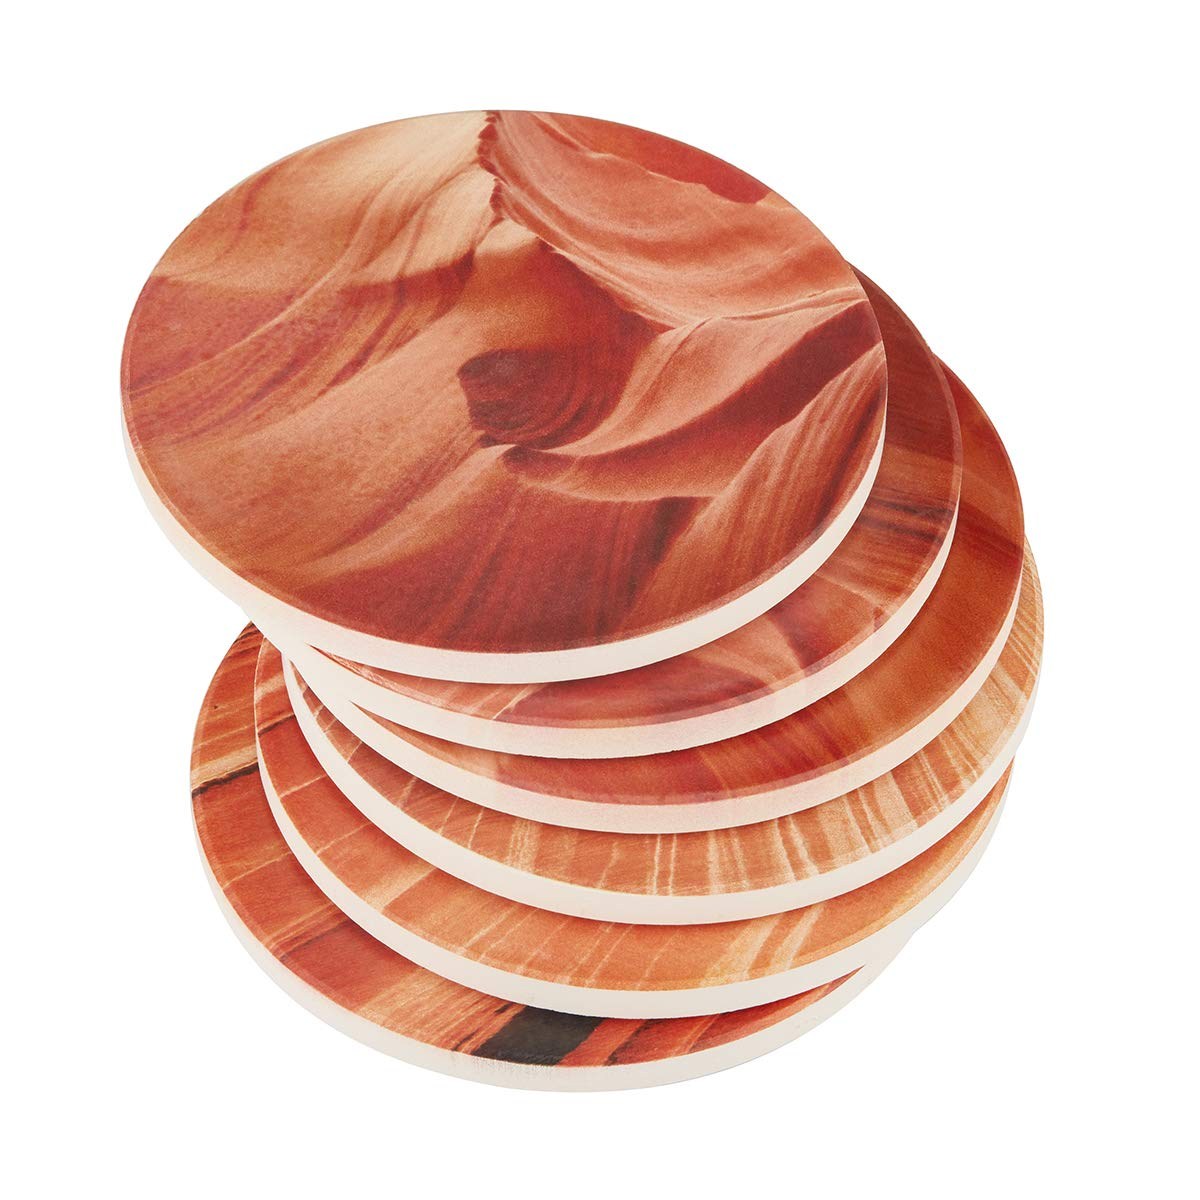 DOWAN Absorbent Stone Coasters, Drink Spills Coasters Set, Natural Grand Canyon Varying Patterns, Multicolor, Set of 6